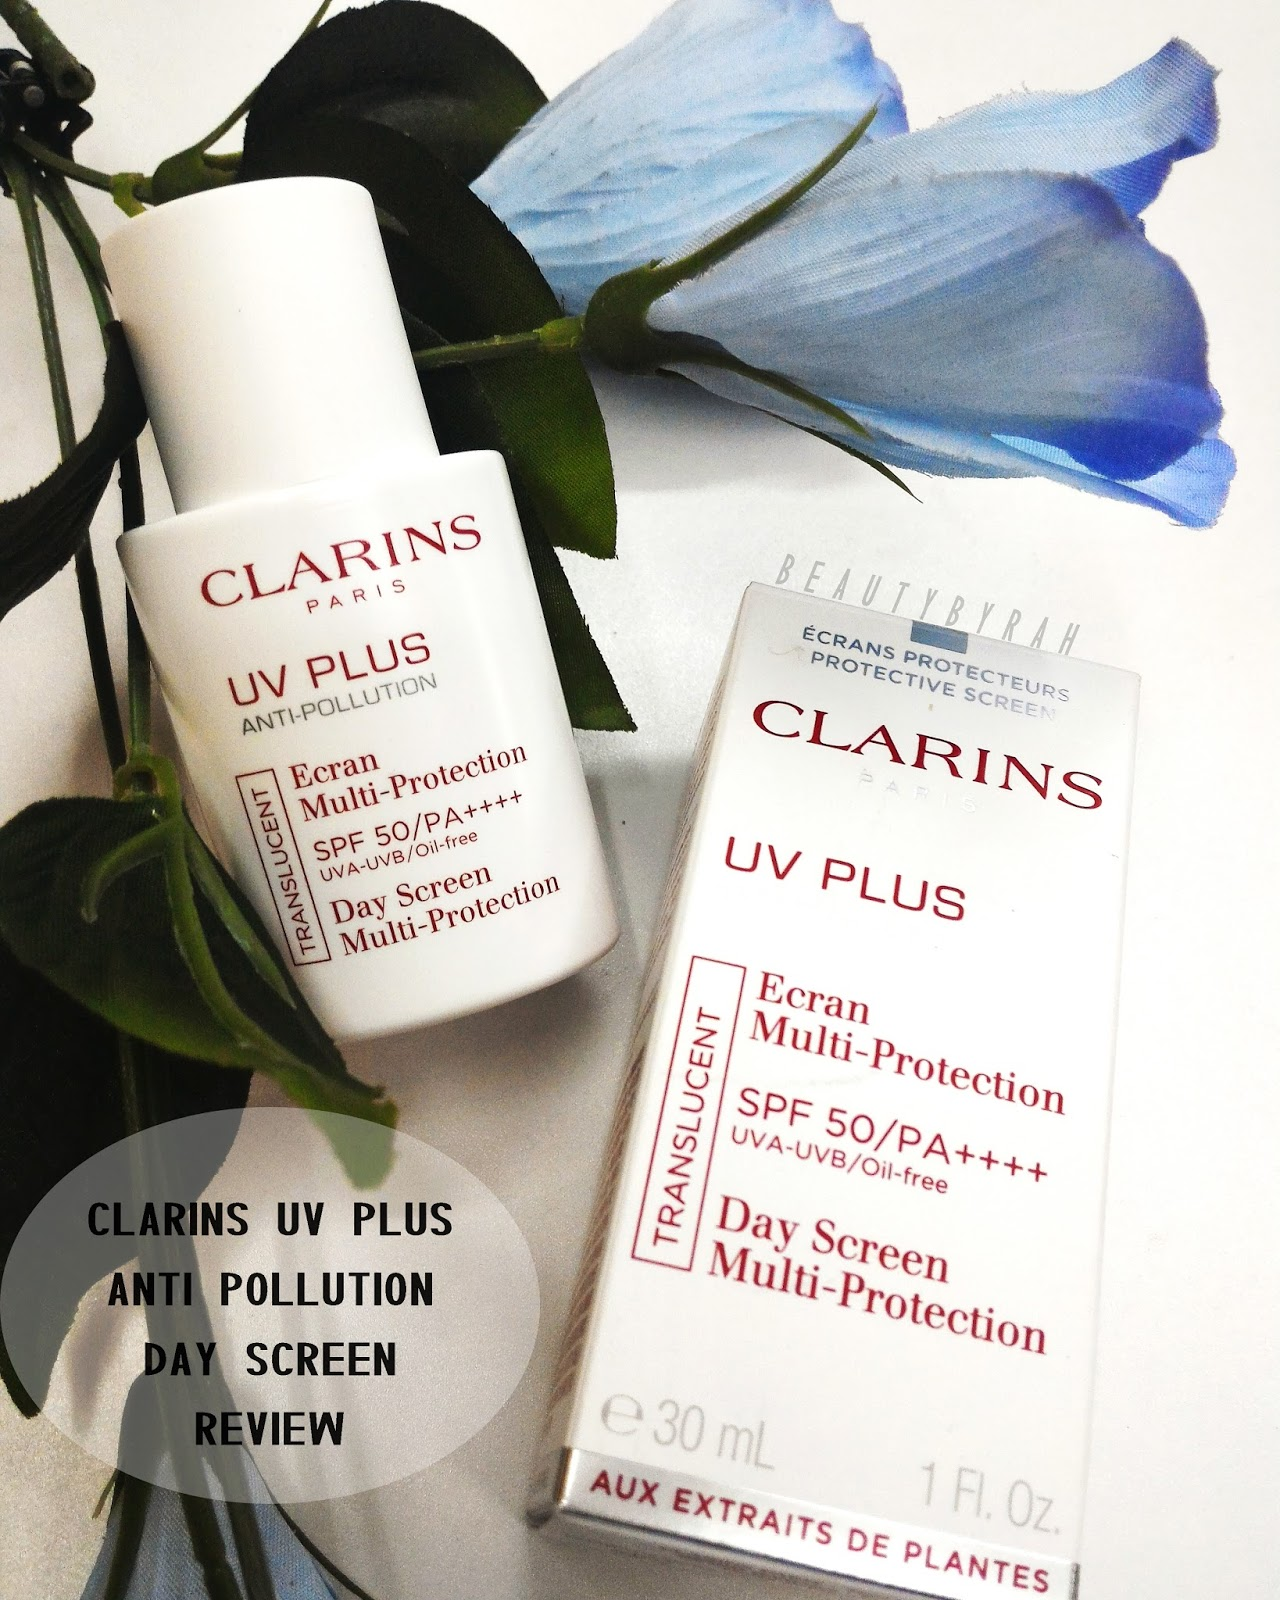 Clarins UV Plus Anti Pollution Multi Protection Day Screen Review